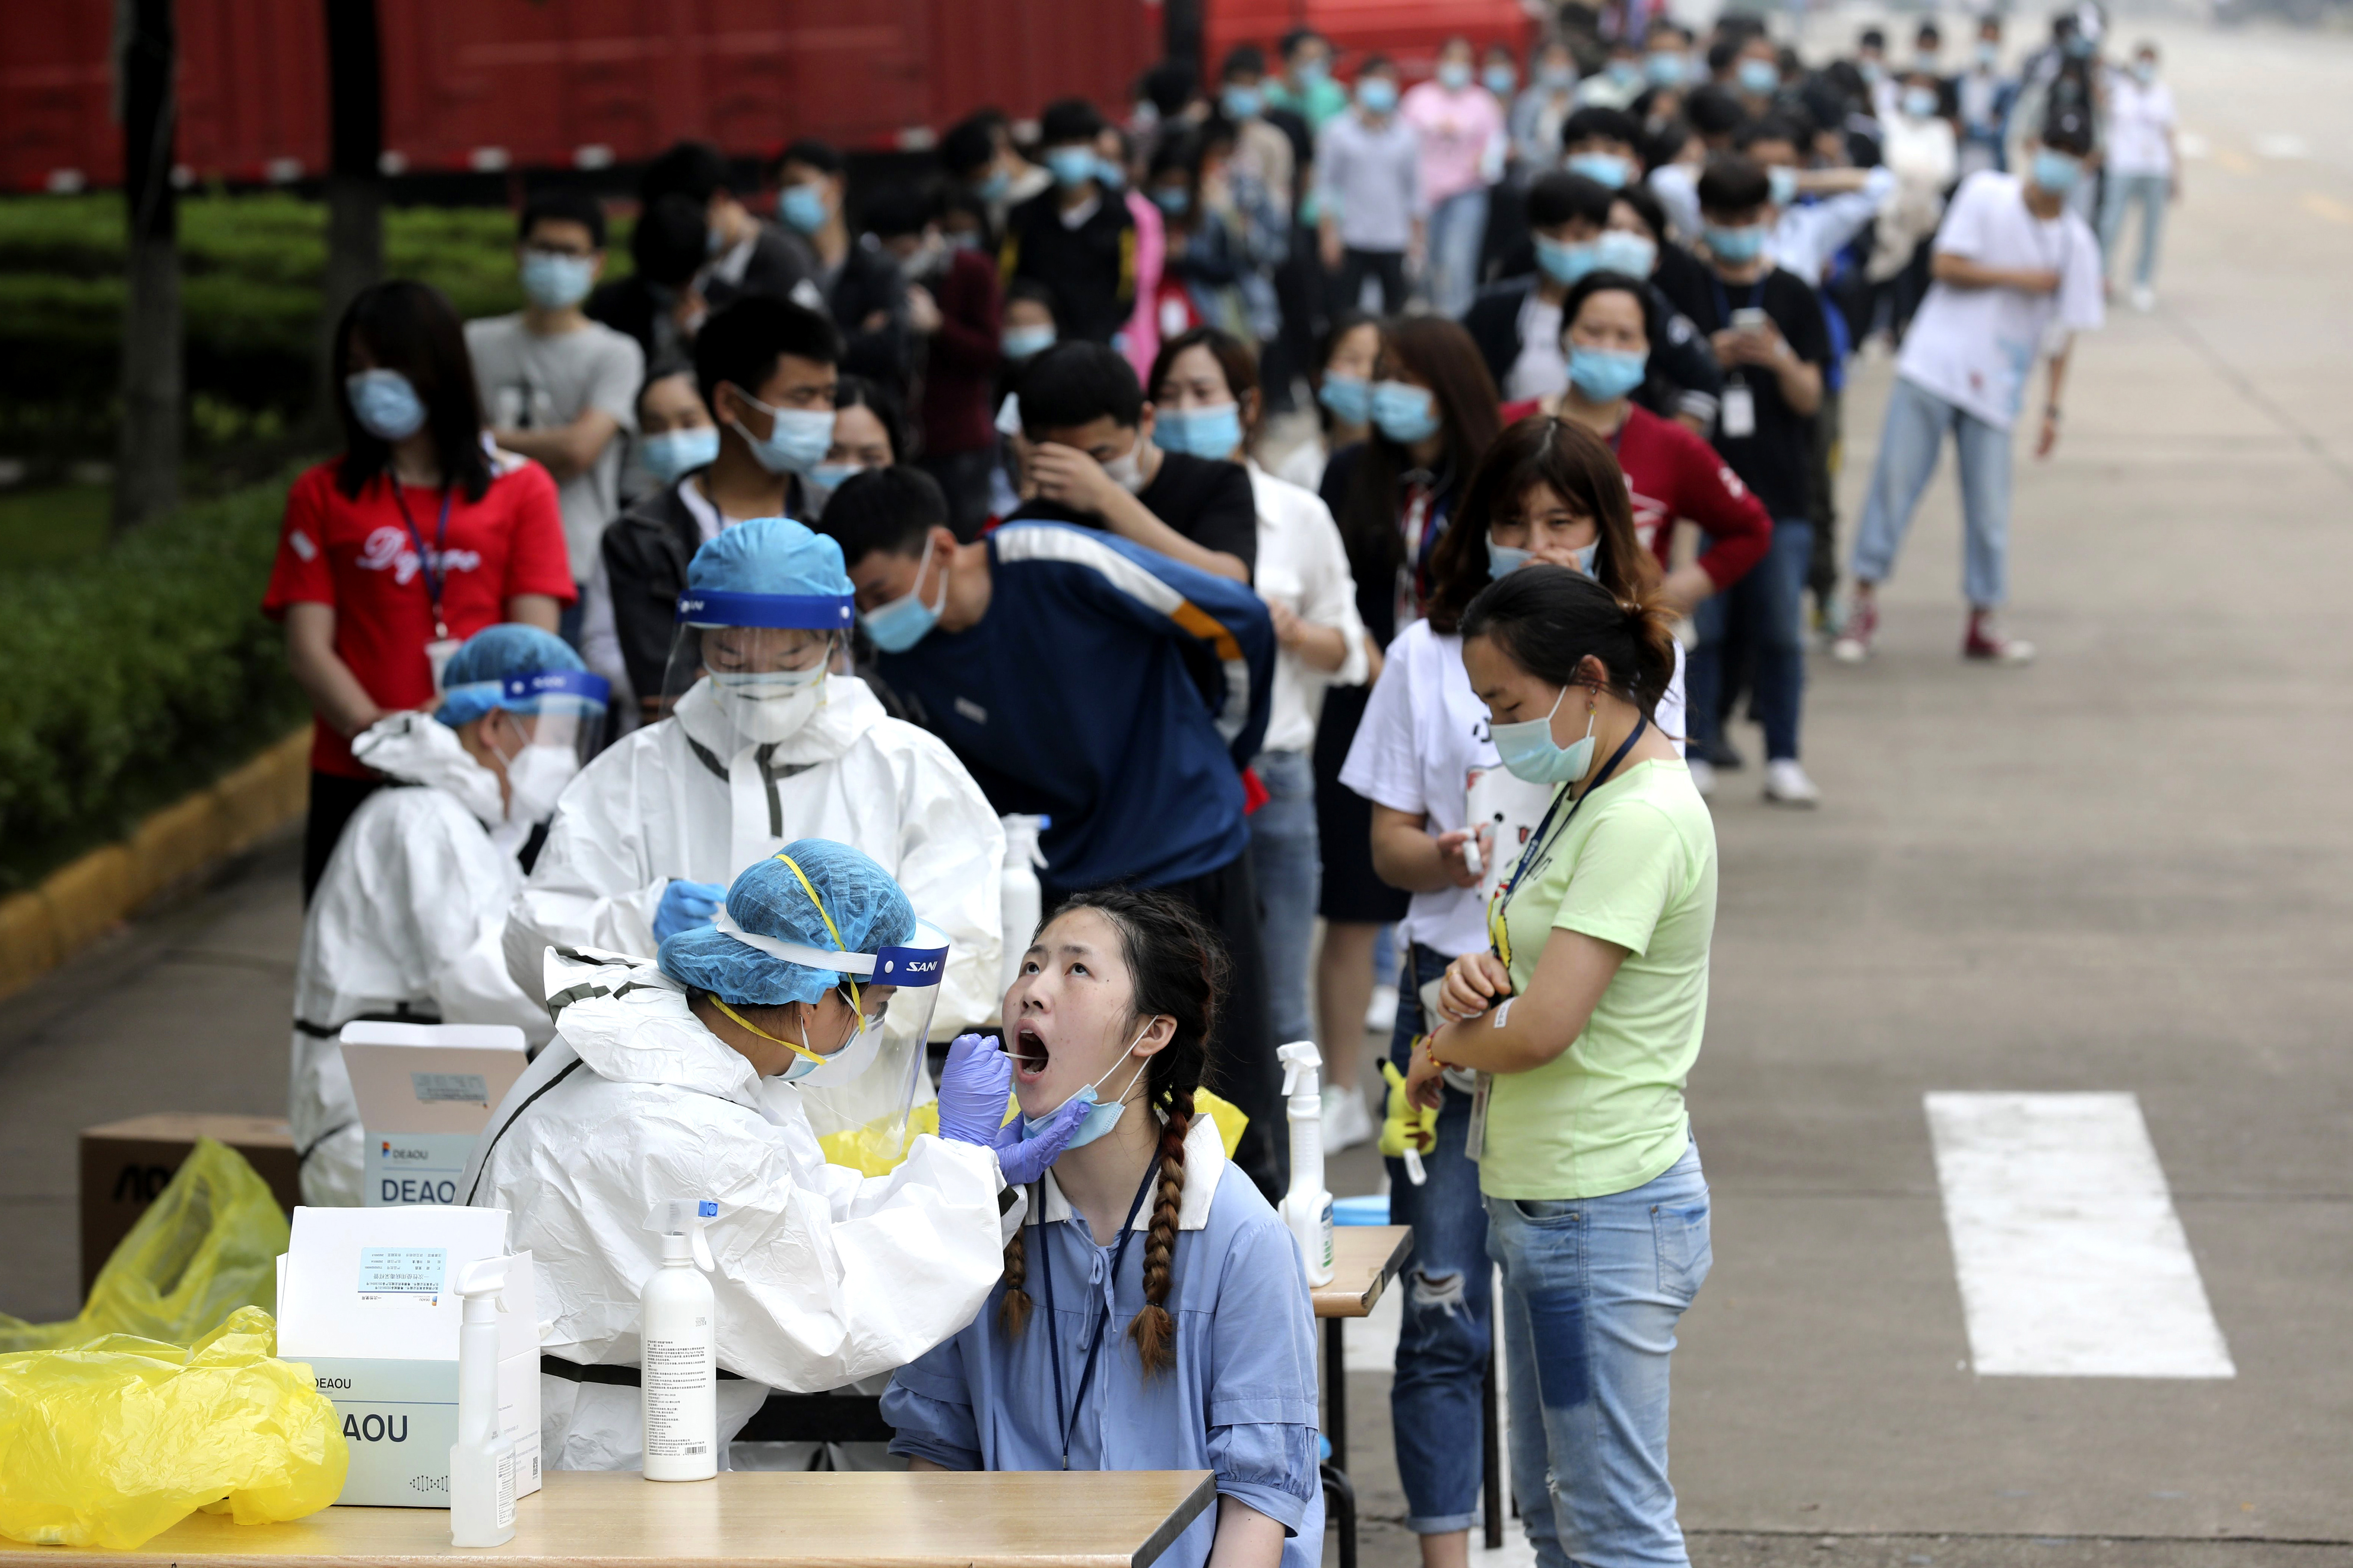 Wuhan coronavirus infections may be 10 times higher than reported China CDC study finds – Fox News